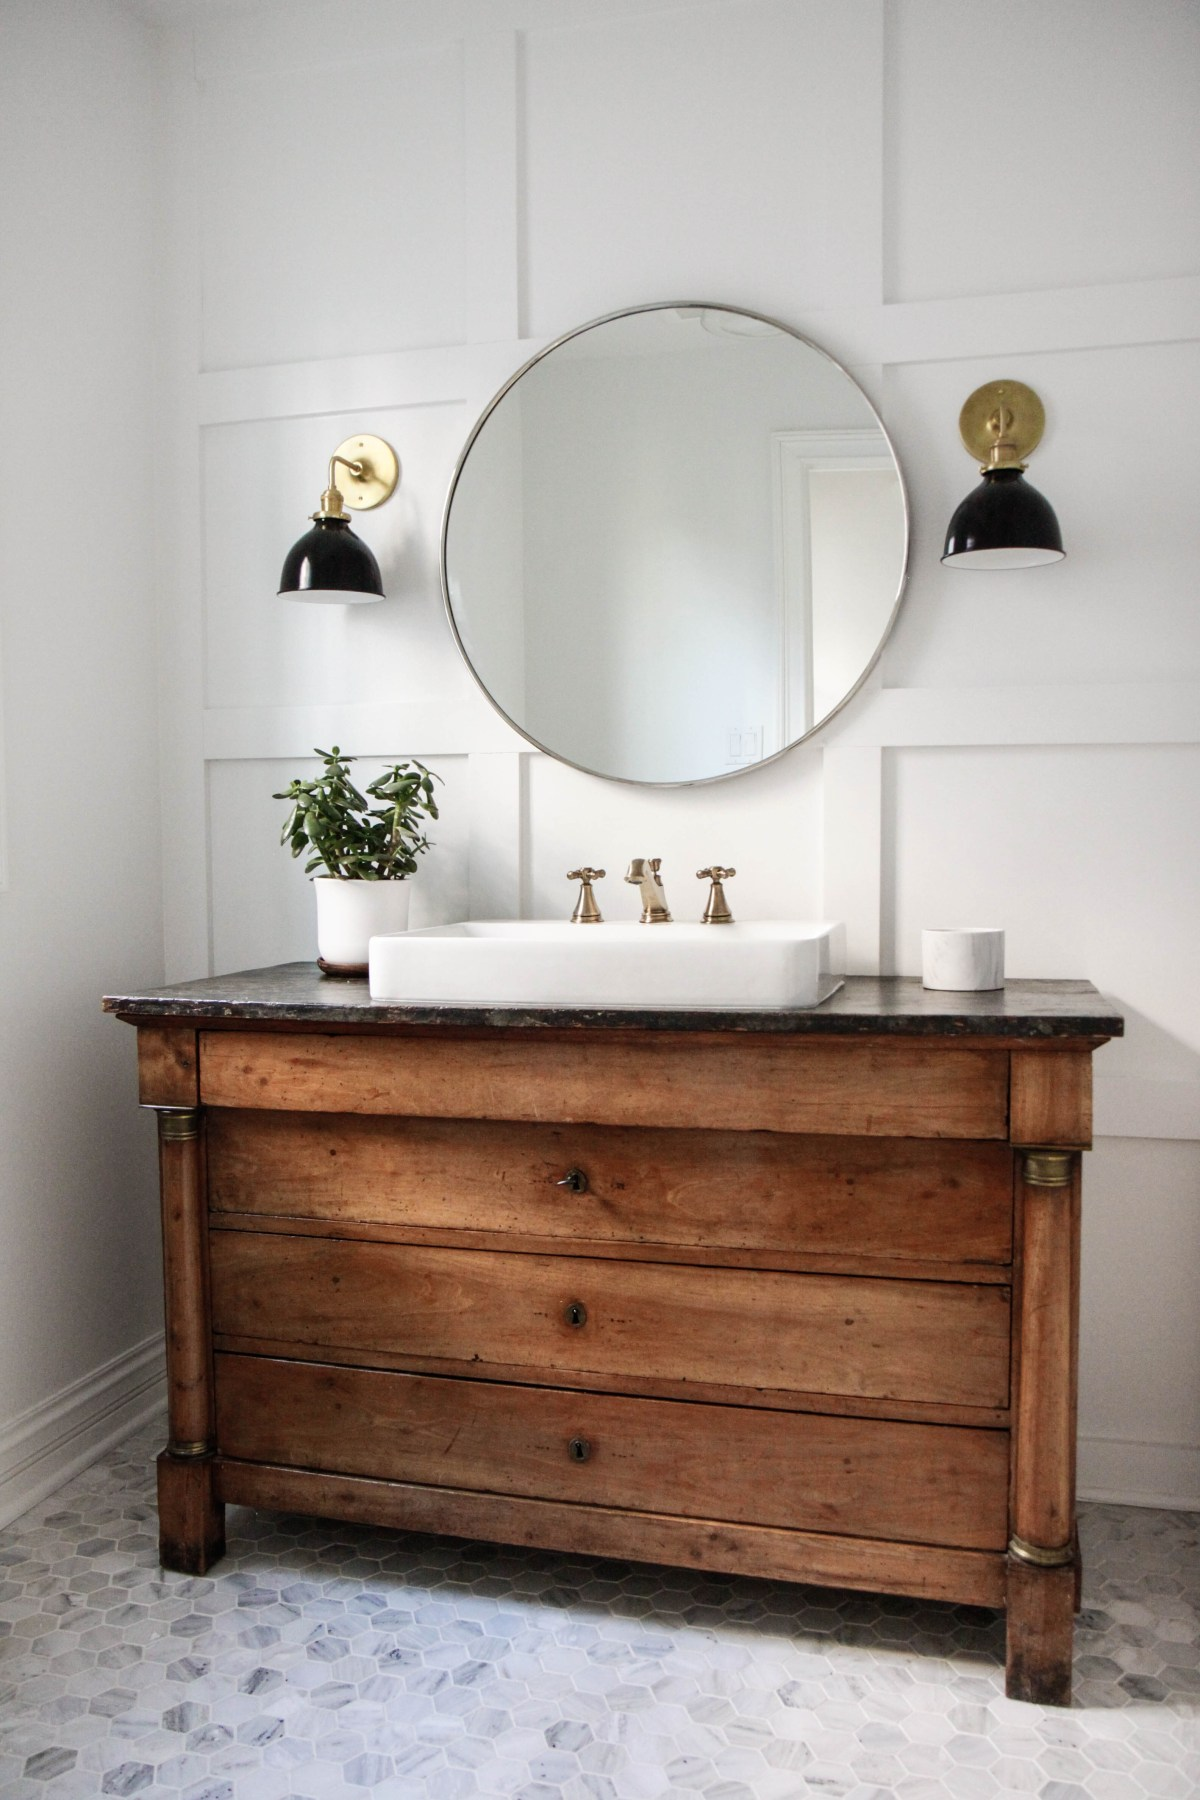 bathroom with an antique vanity